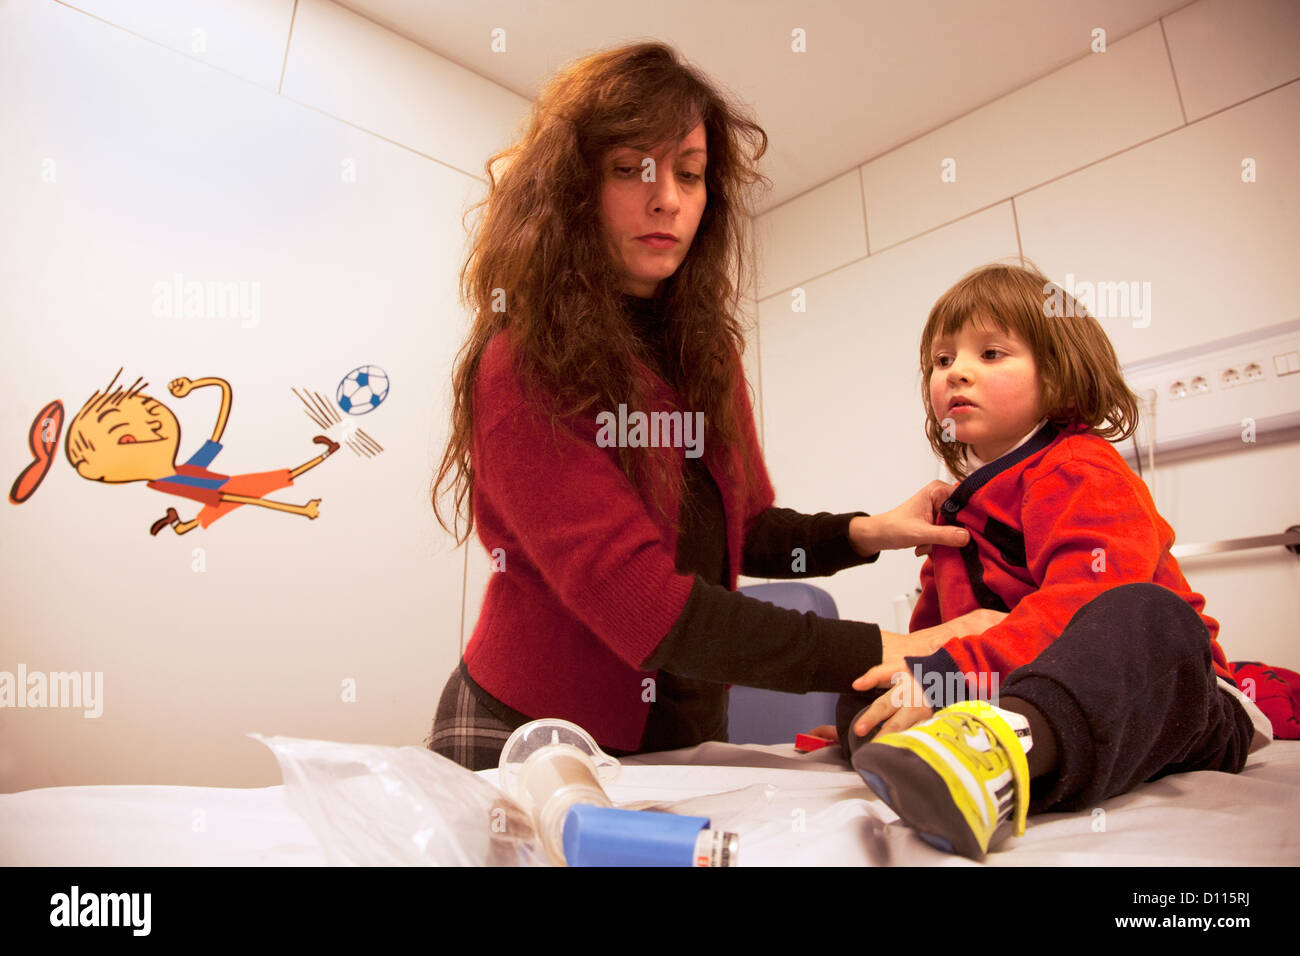 Mother with her 4 year old son in hospital - Stock Image